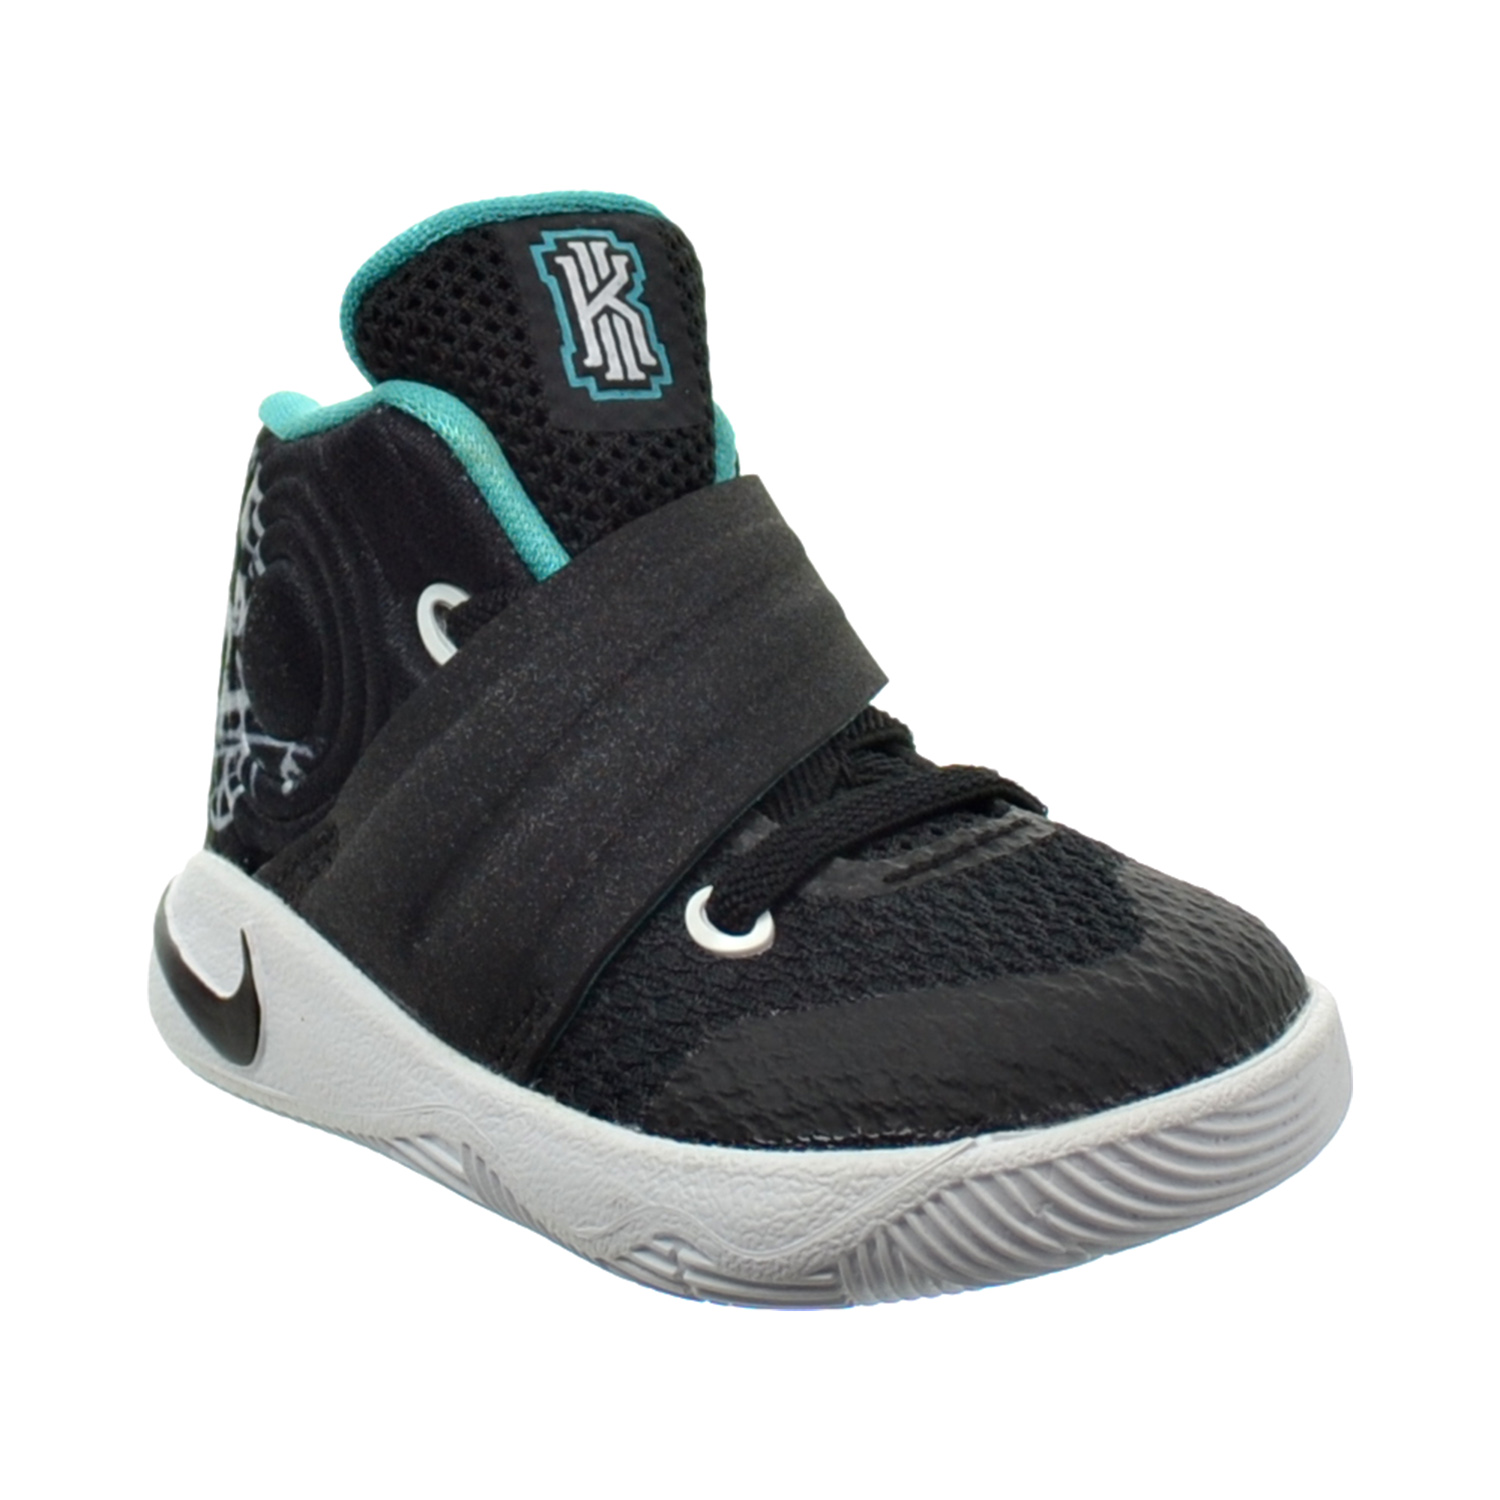 Boys/' Toddler Nike Kyrie 2 Basketball Shoes Mid Navy  Gold 827281 447 NO BOX TOP